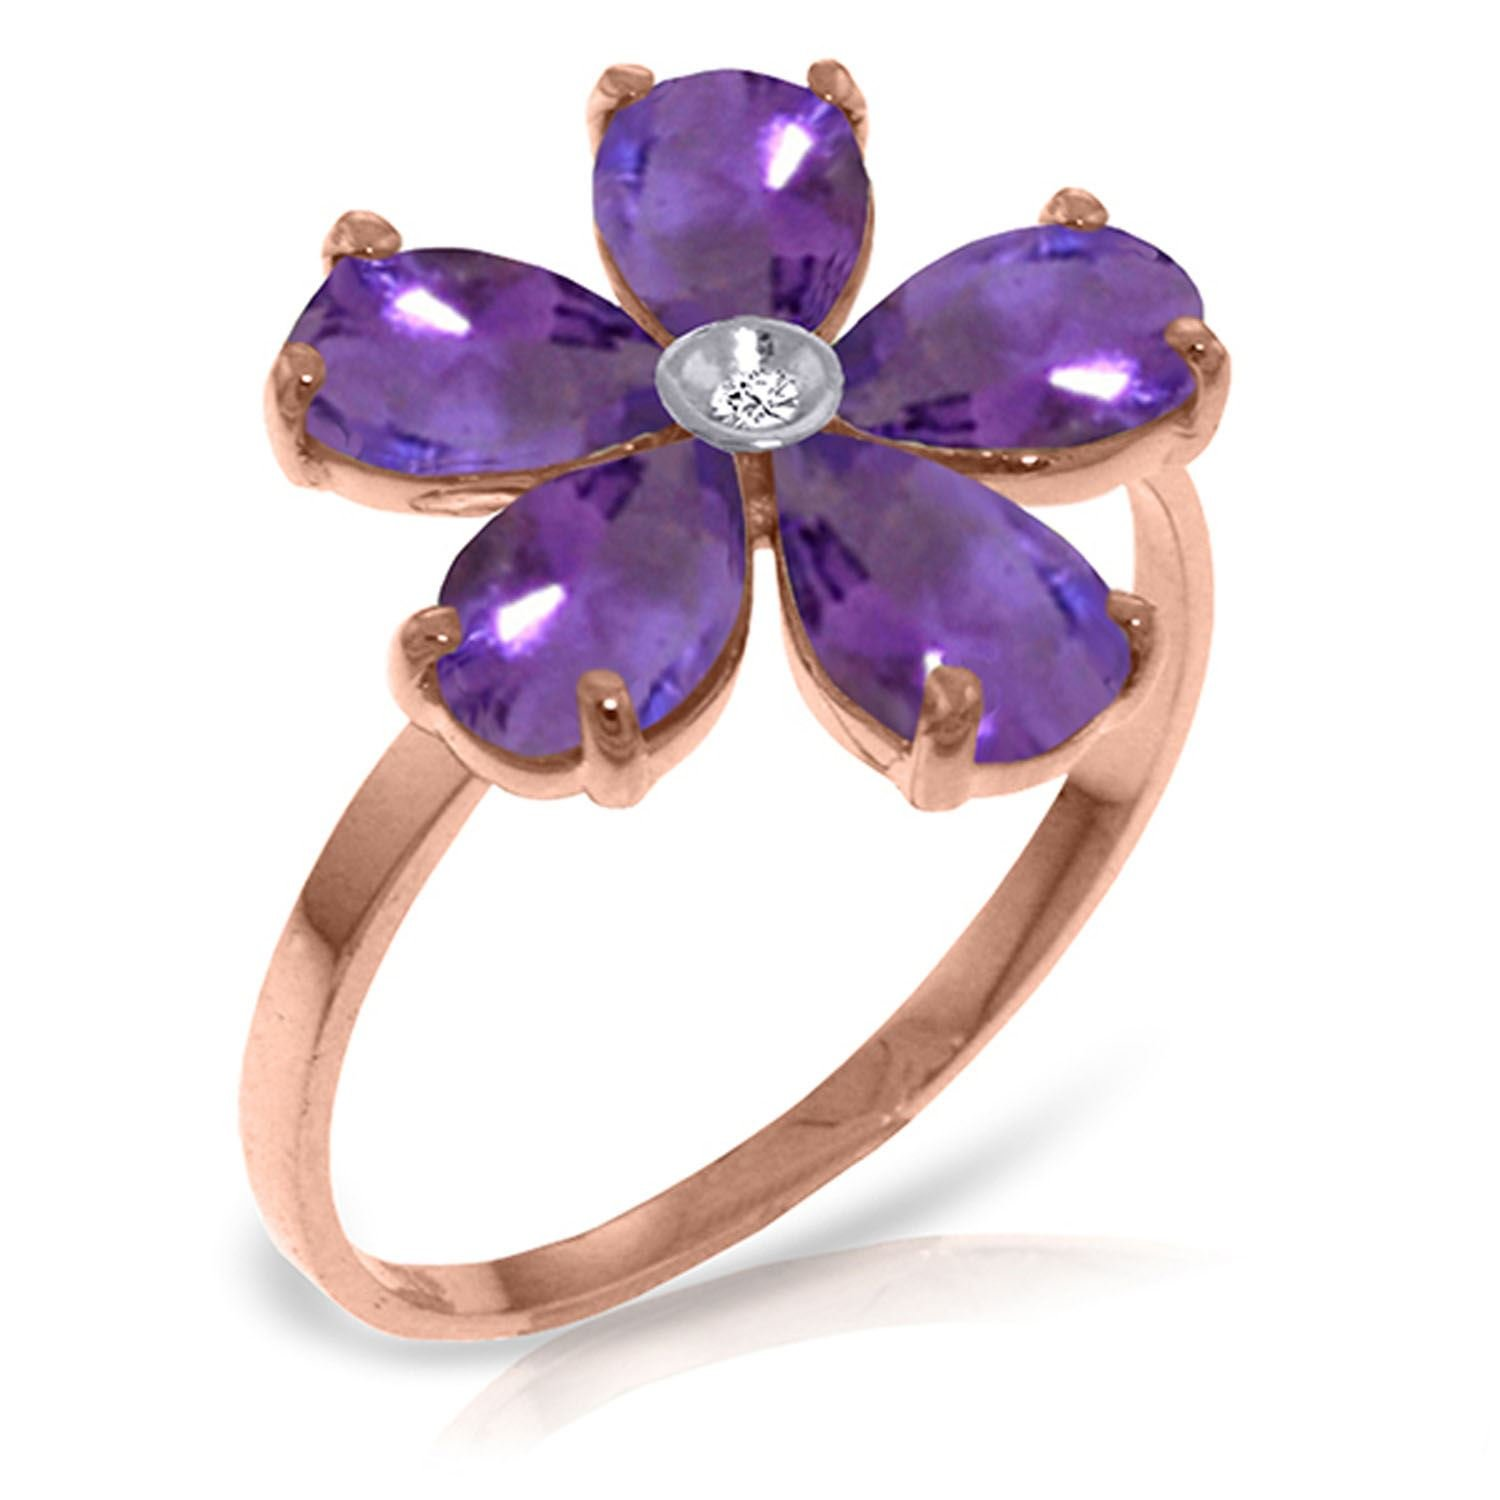 ALARRI 14K Solid Rose Gold Ring w/ Natural Diamond & Purple Amethysts With Ring Size 8.5